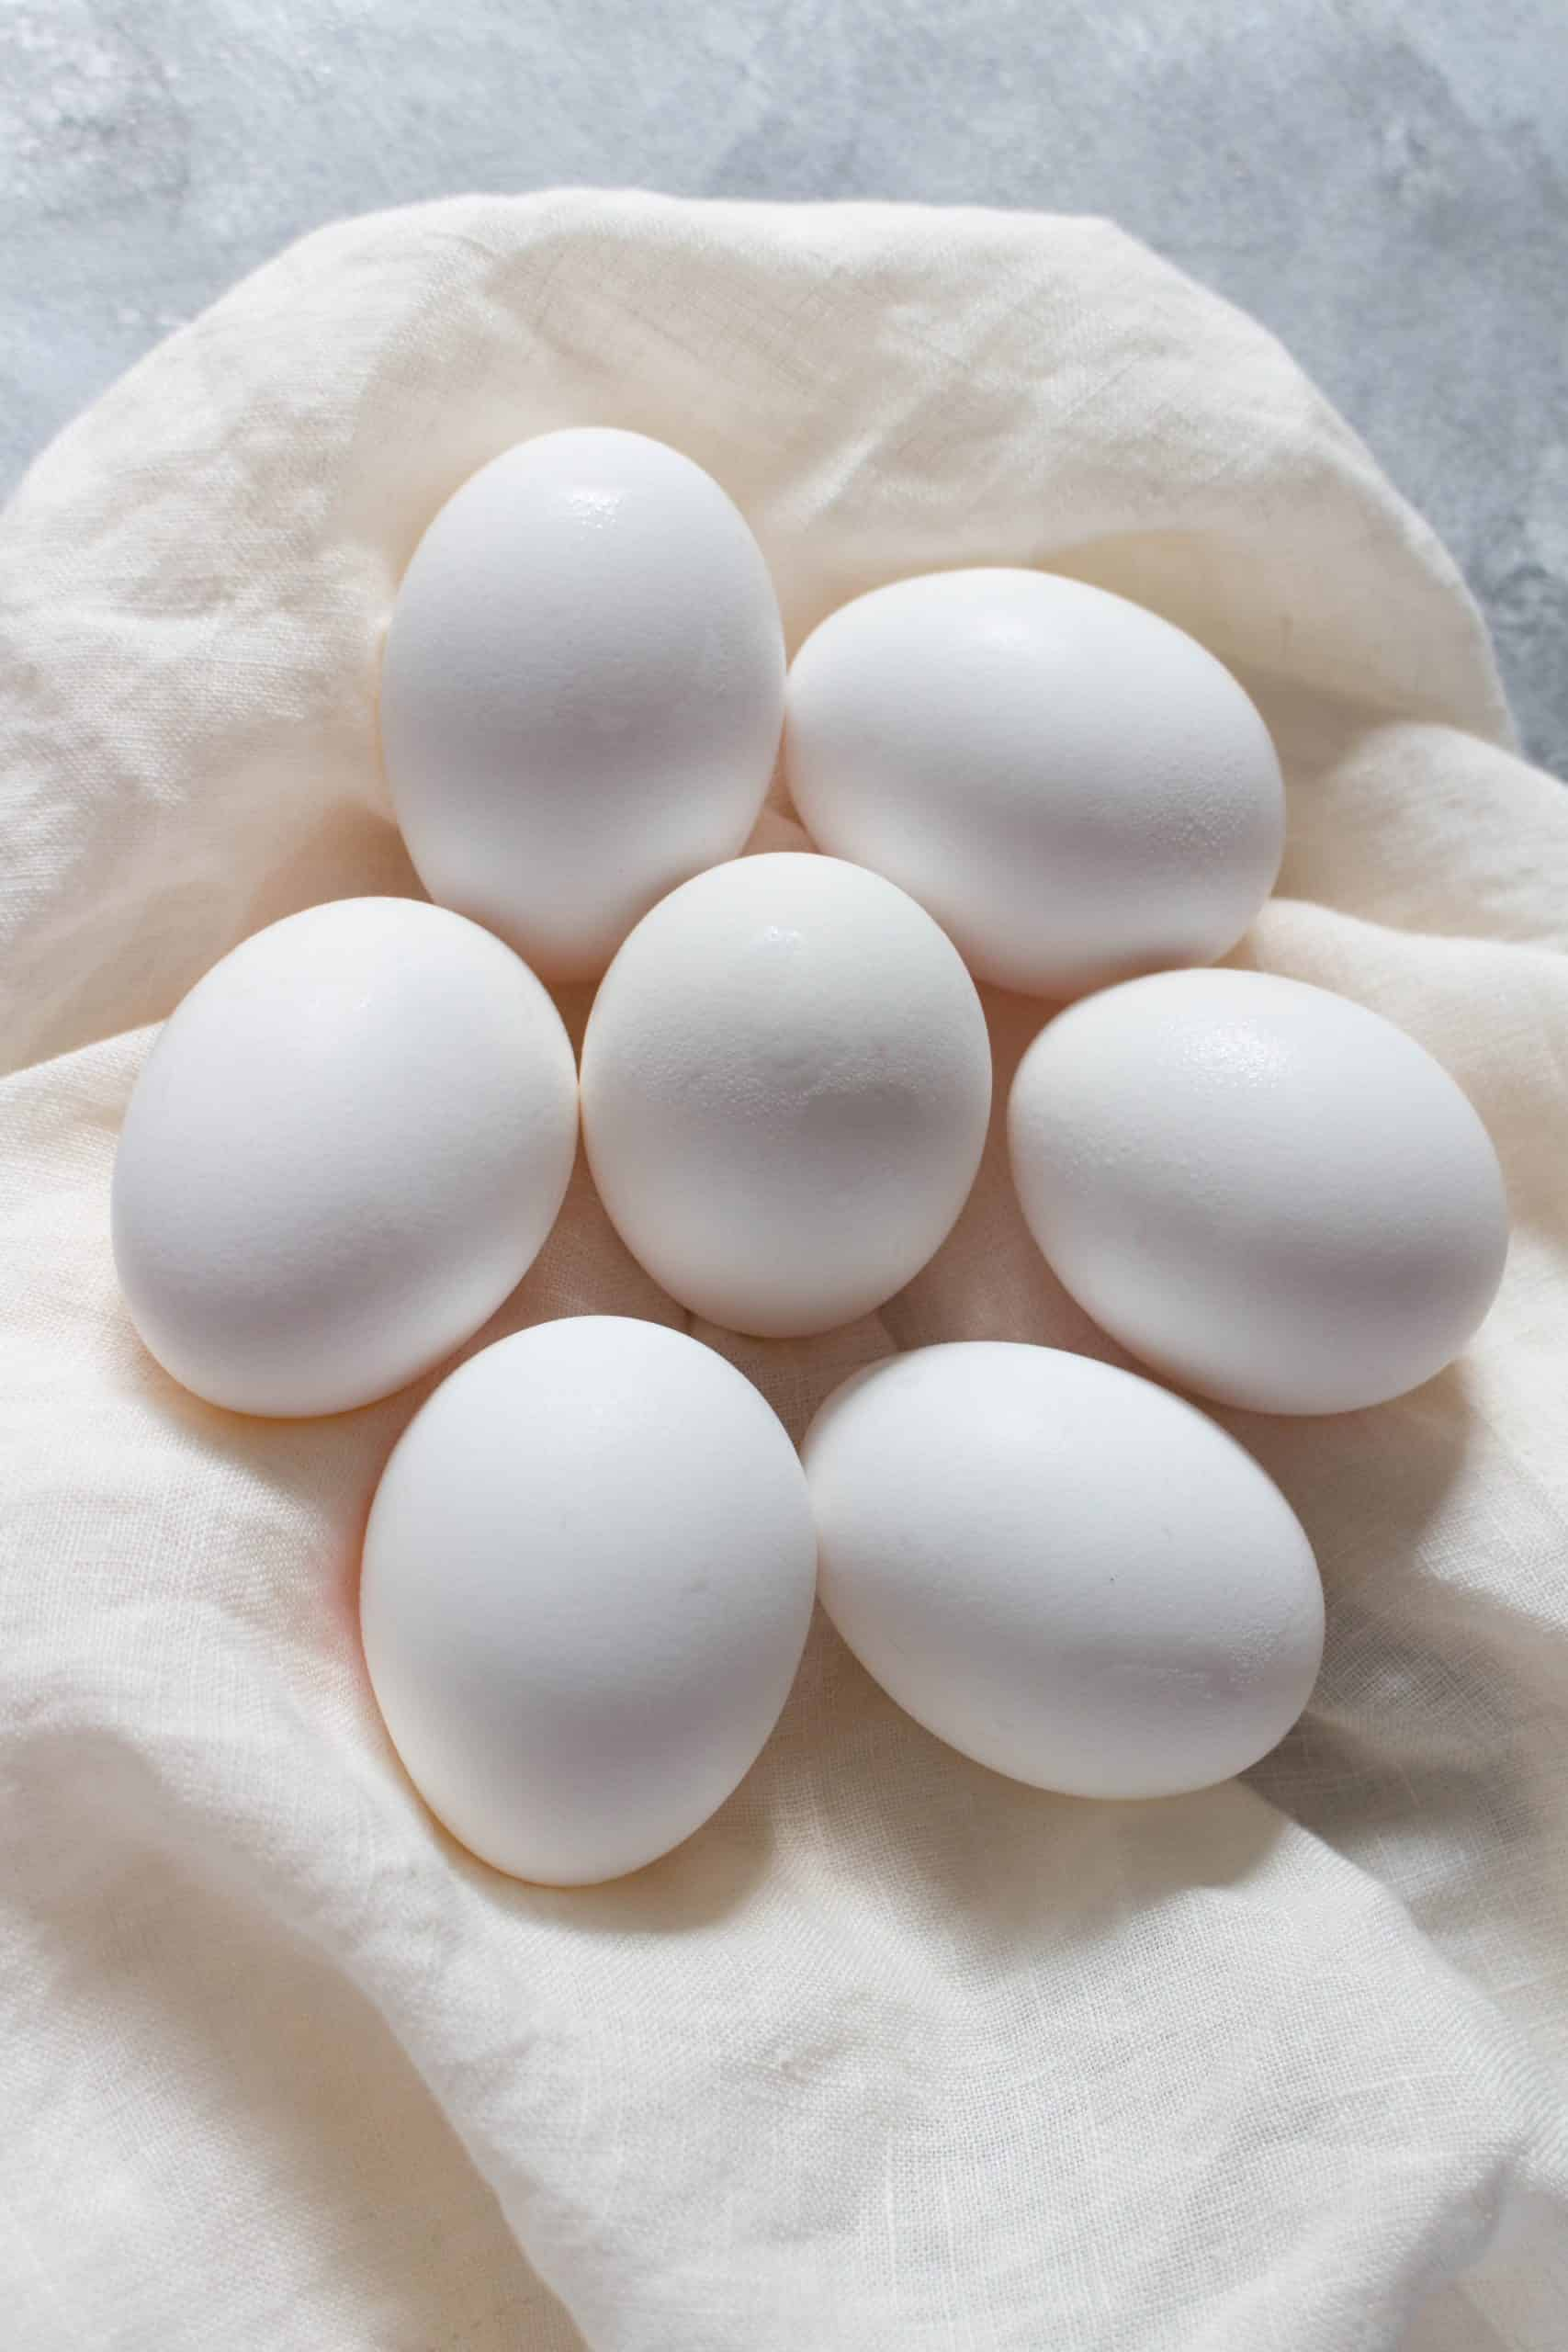 Want to make the perfect hard boiled egg? Here are four foolproof ways to make hardboiled eggs!